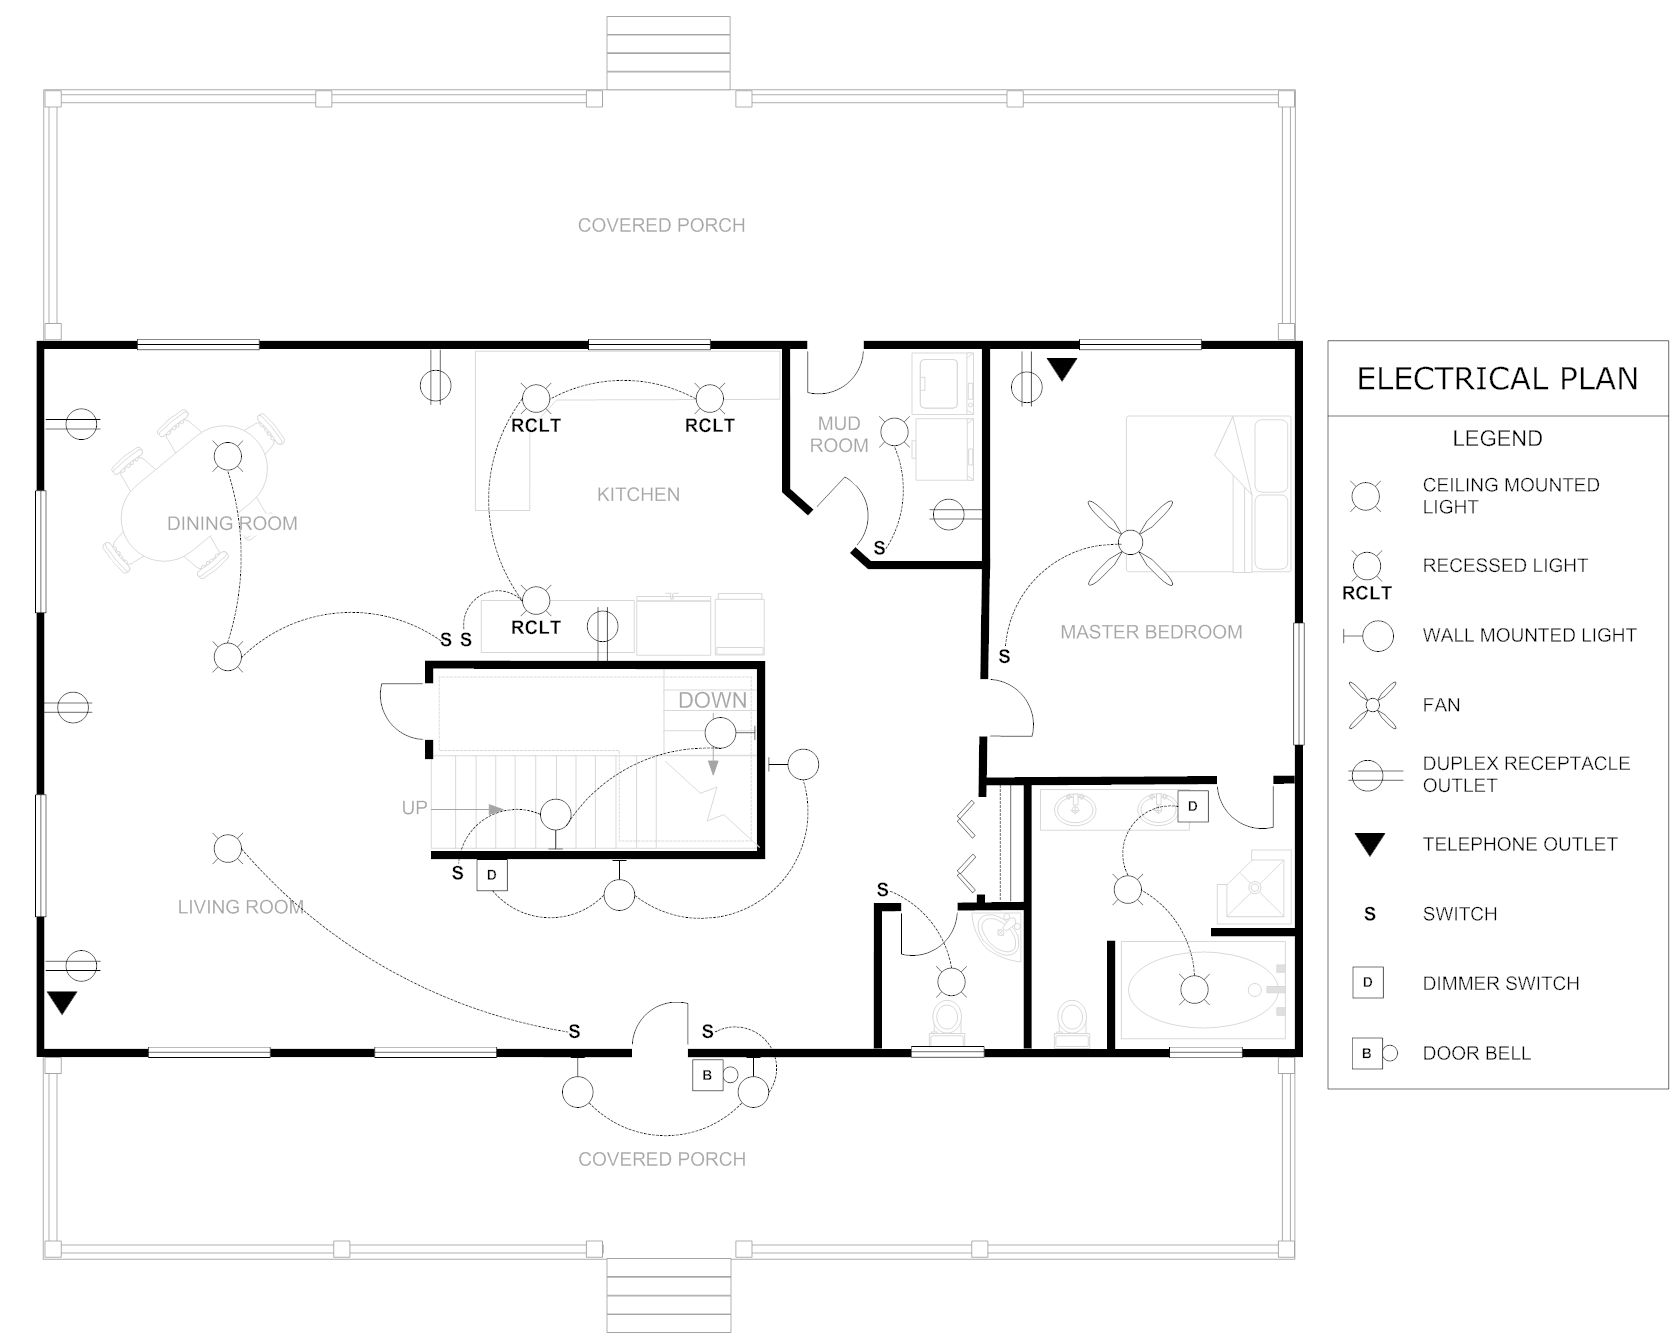 House floor plan examples simple electrical installation room interiors malvernweather Image collections